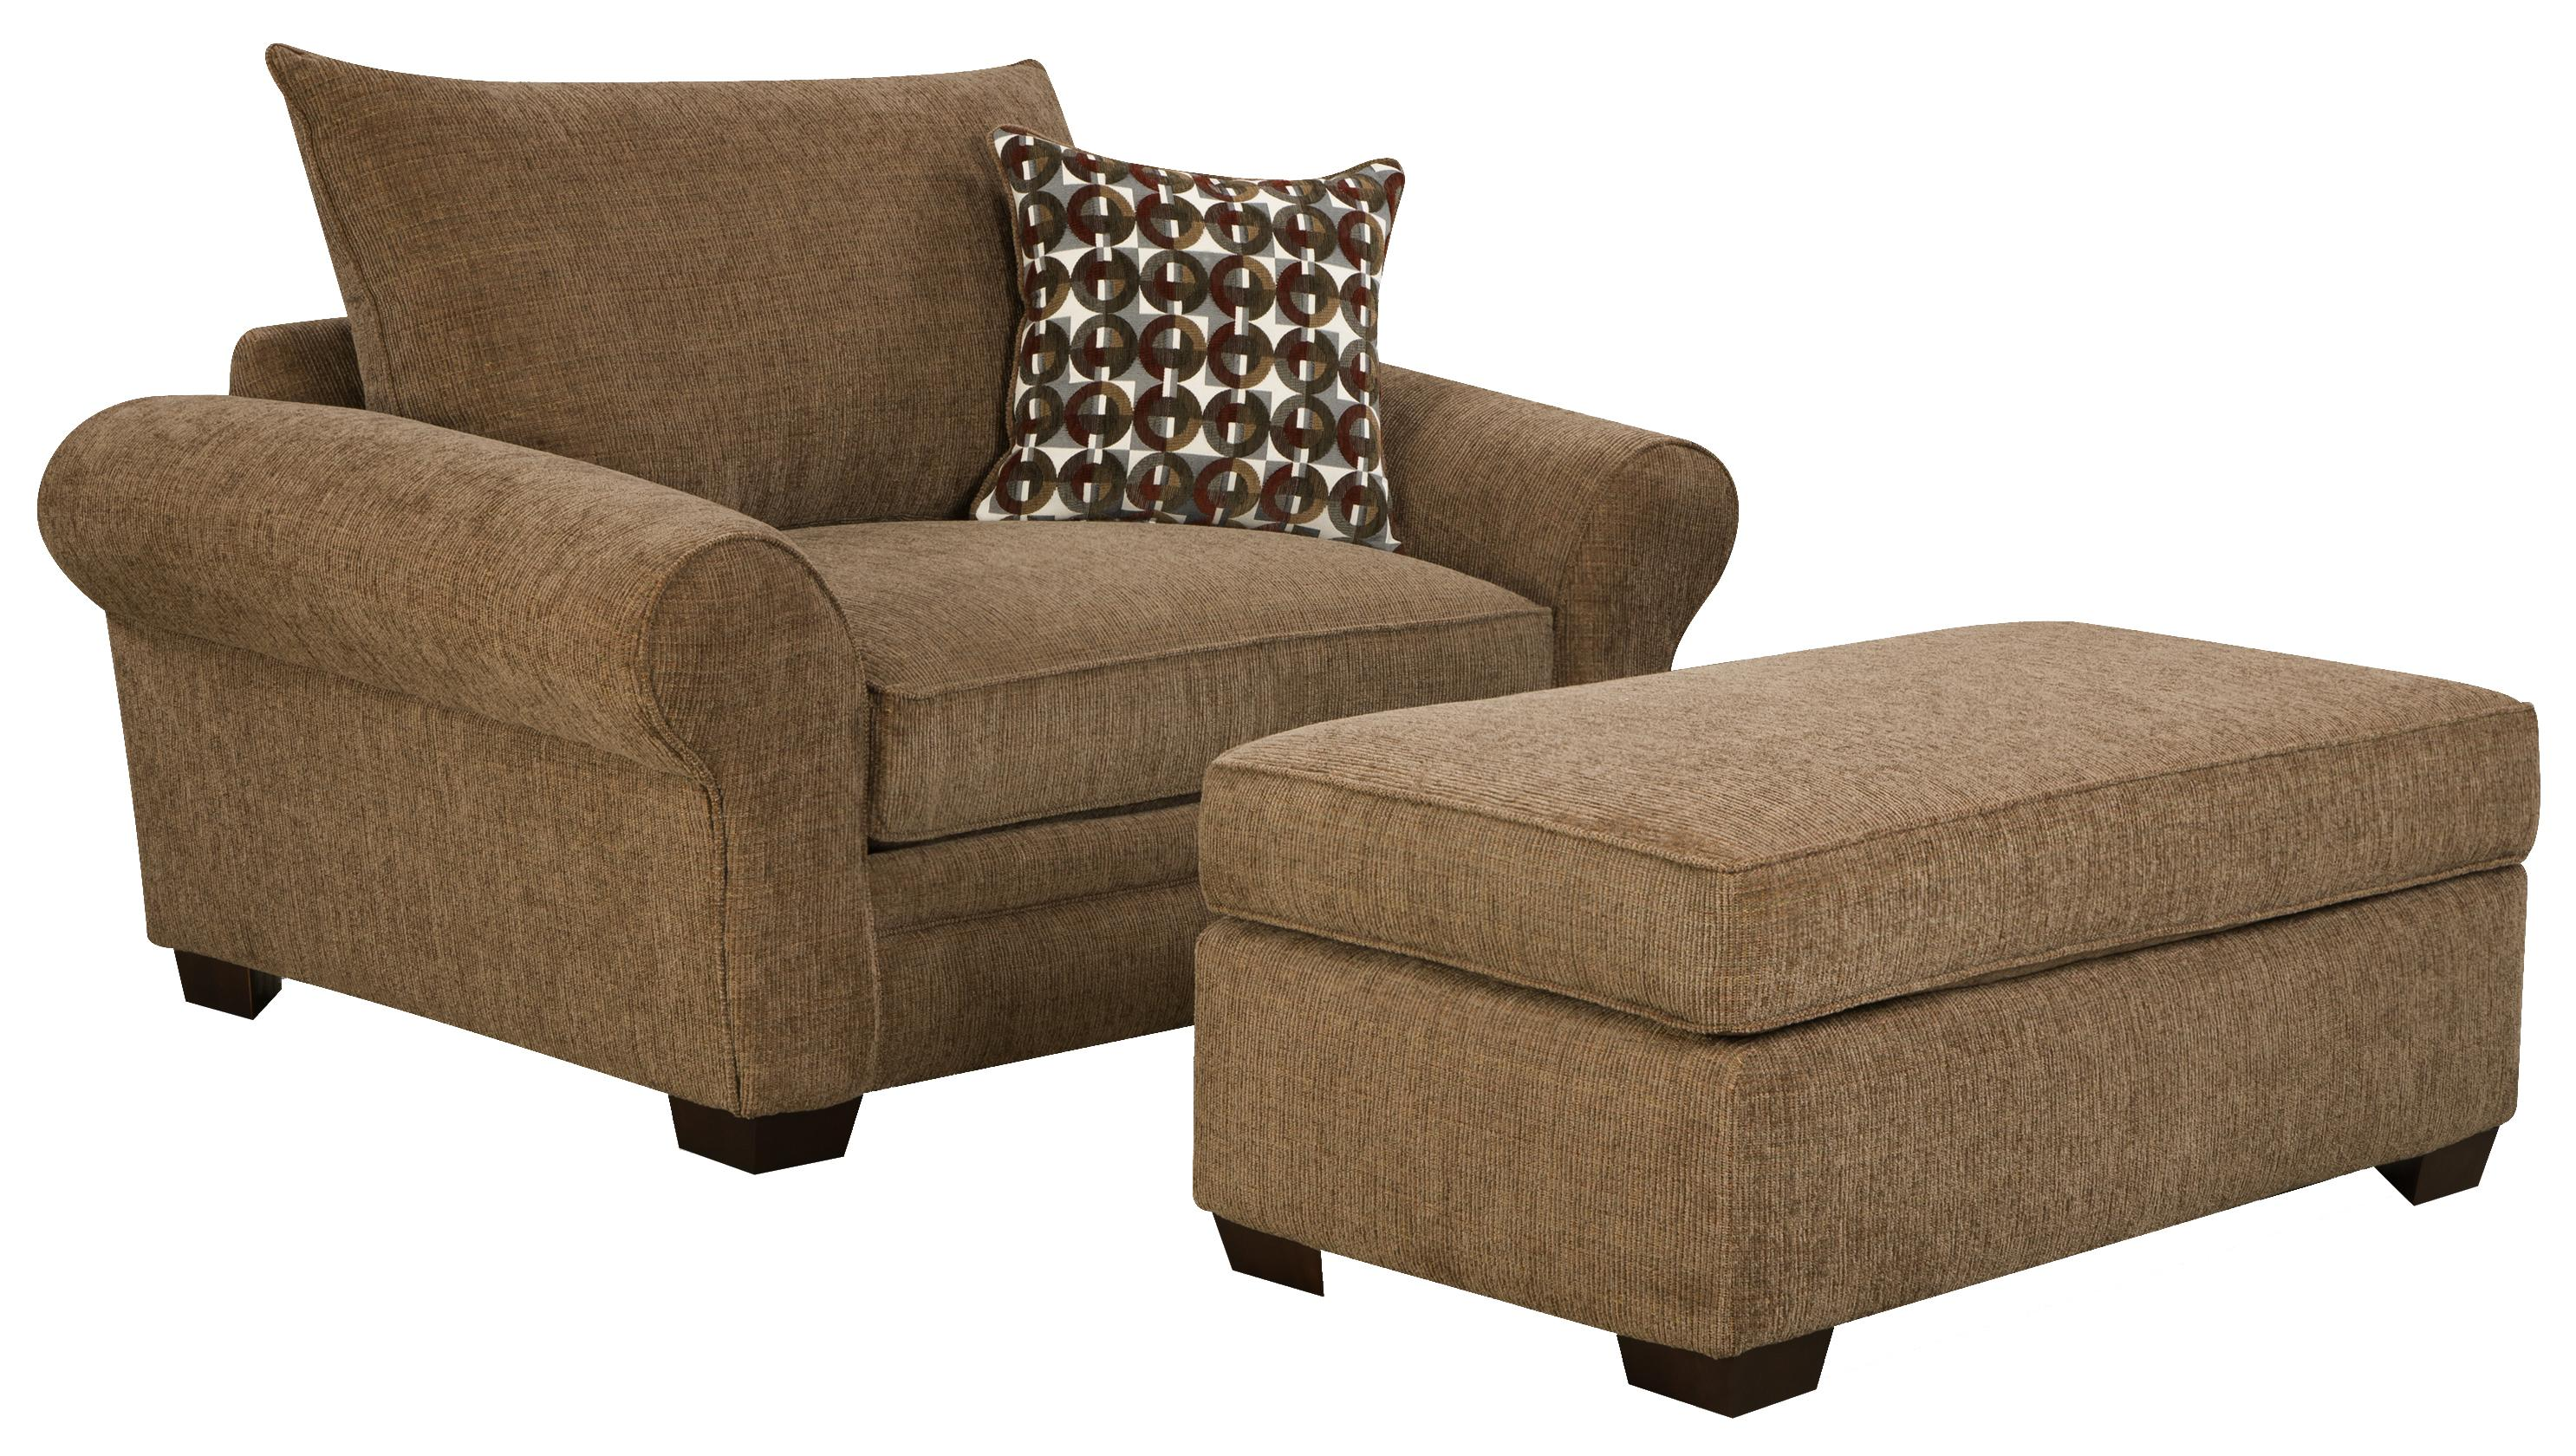 living room chair and ottoman chairs with ottomans for living room homesfeed 18443